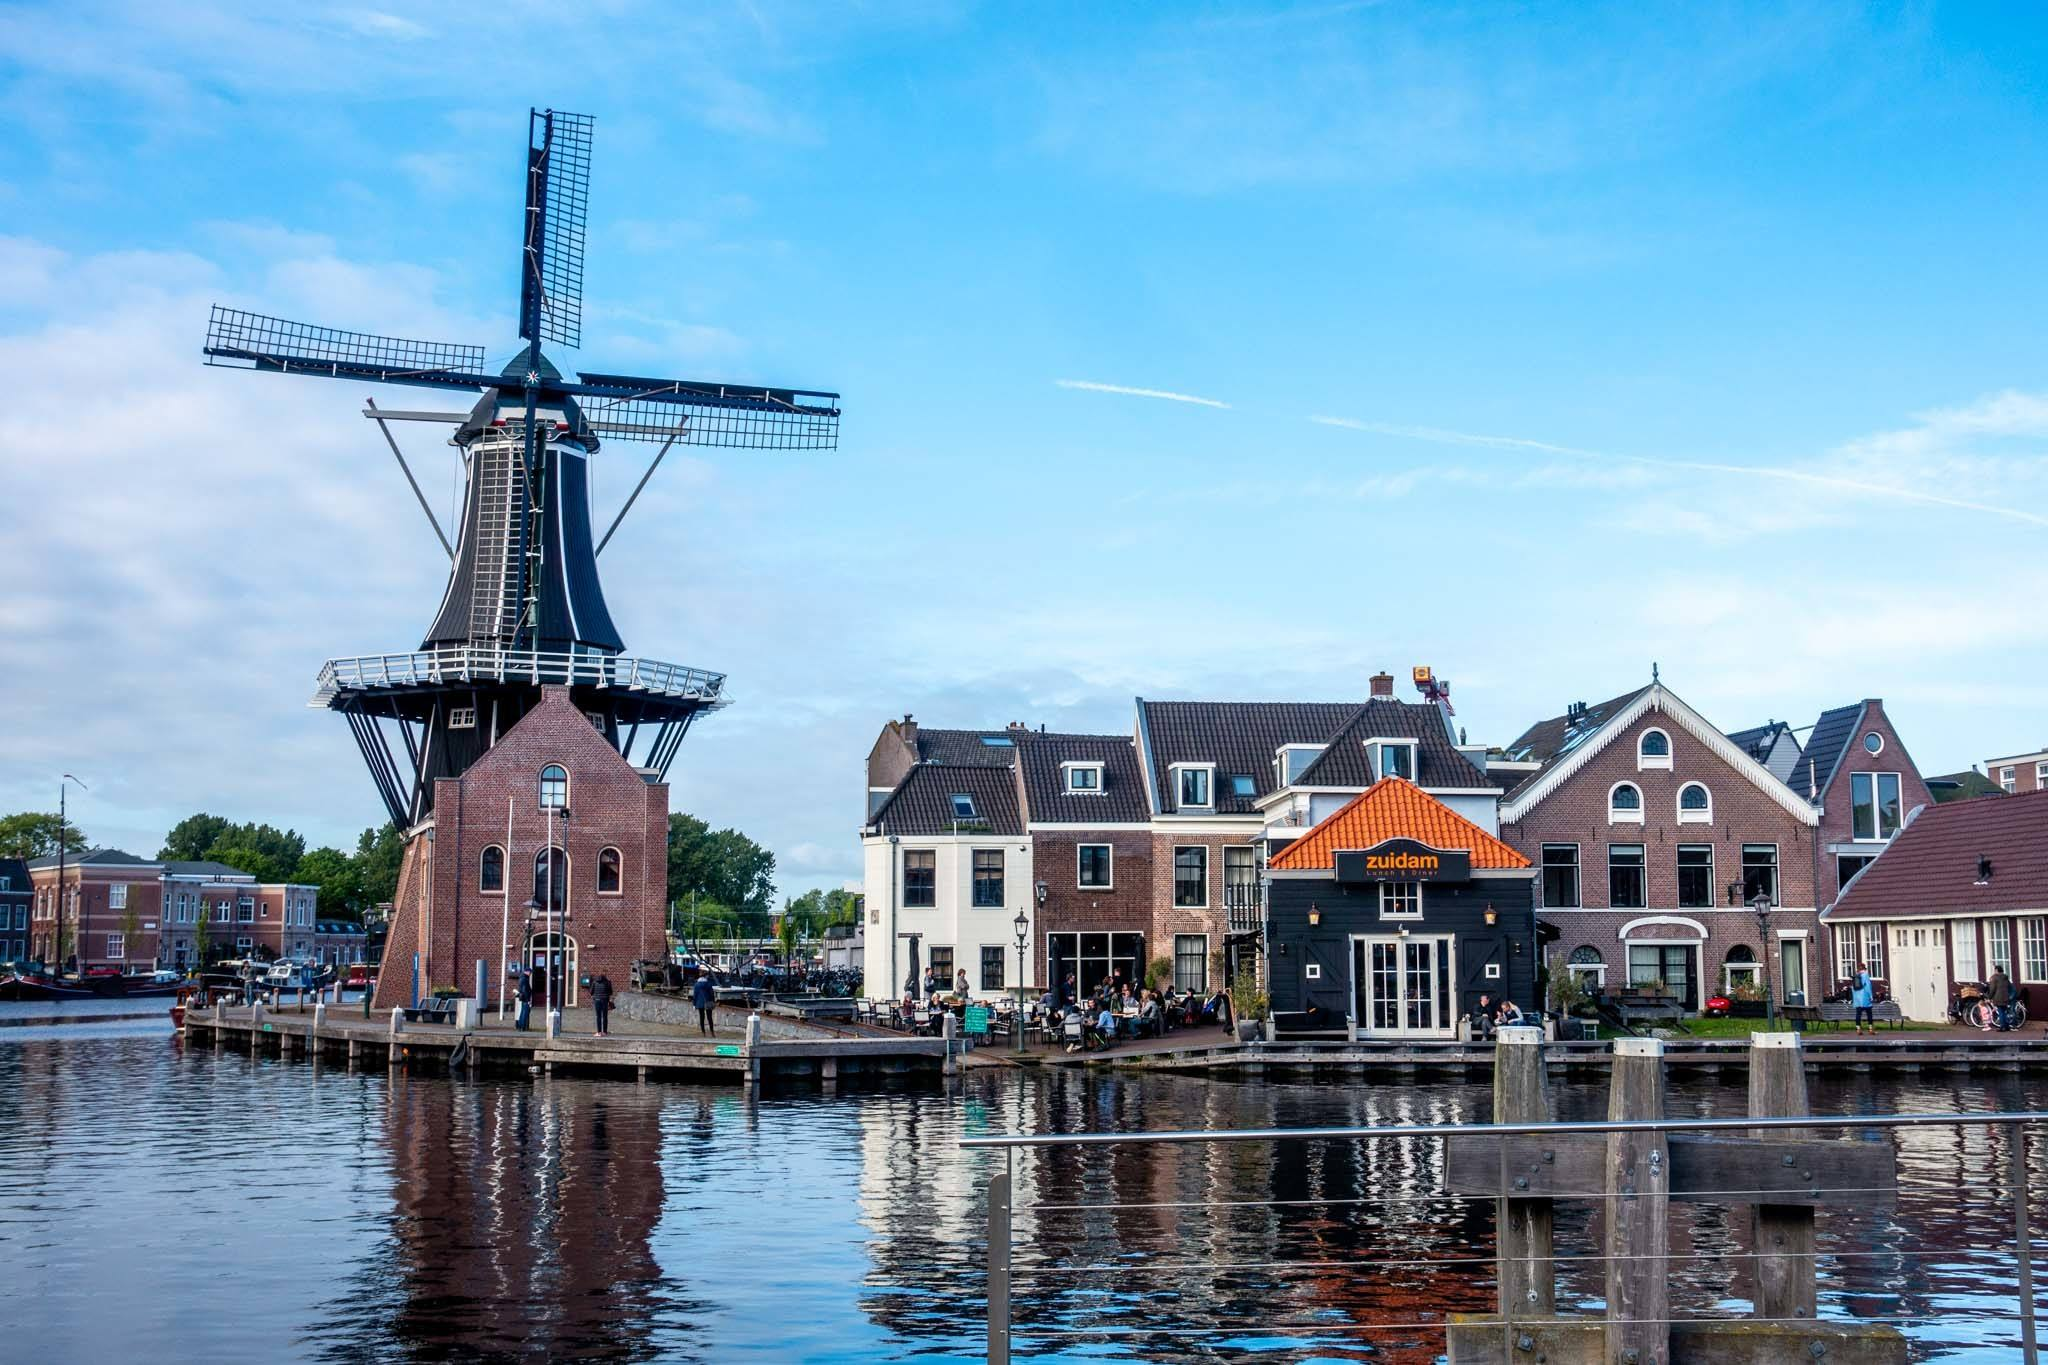 Windmill and buildings overlooking a river